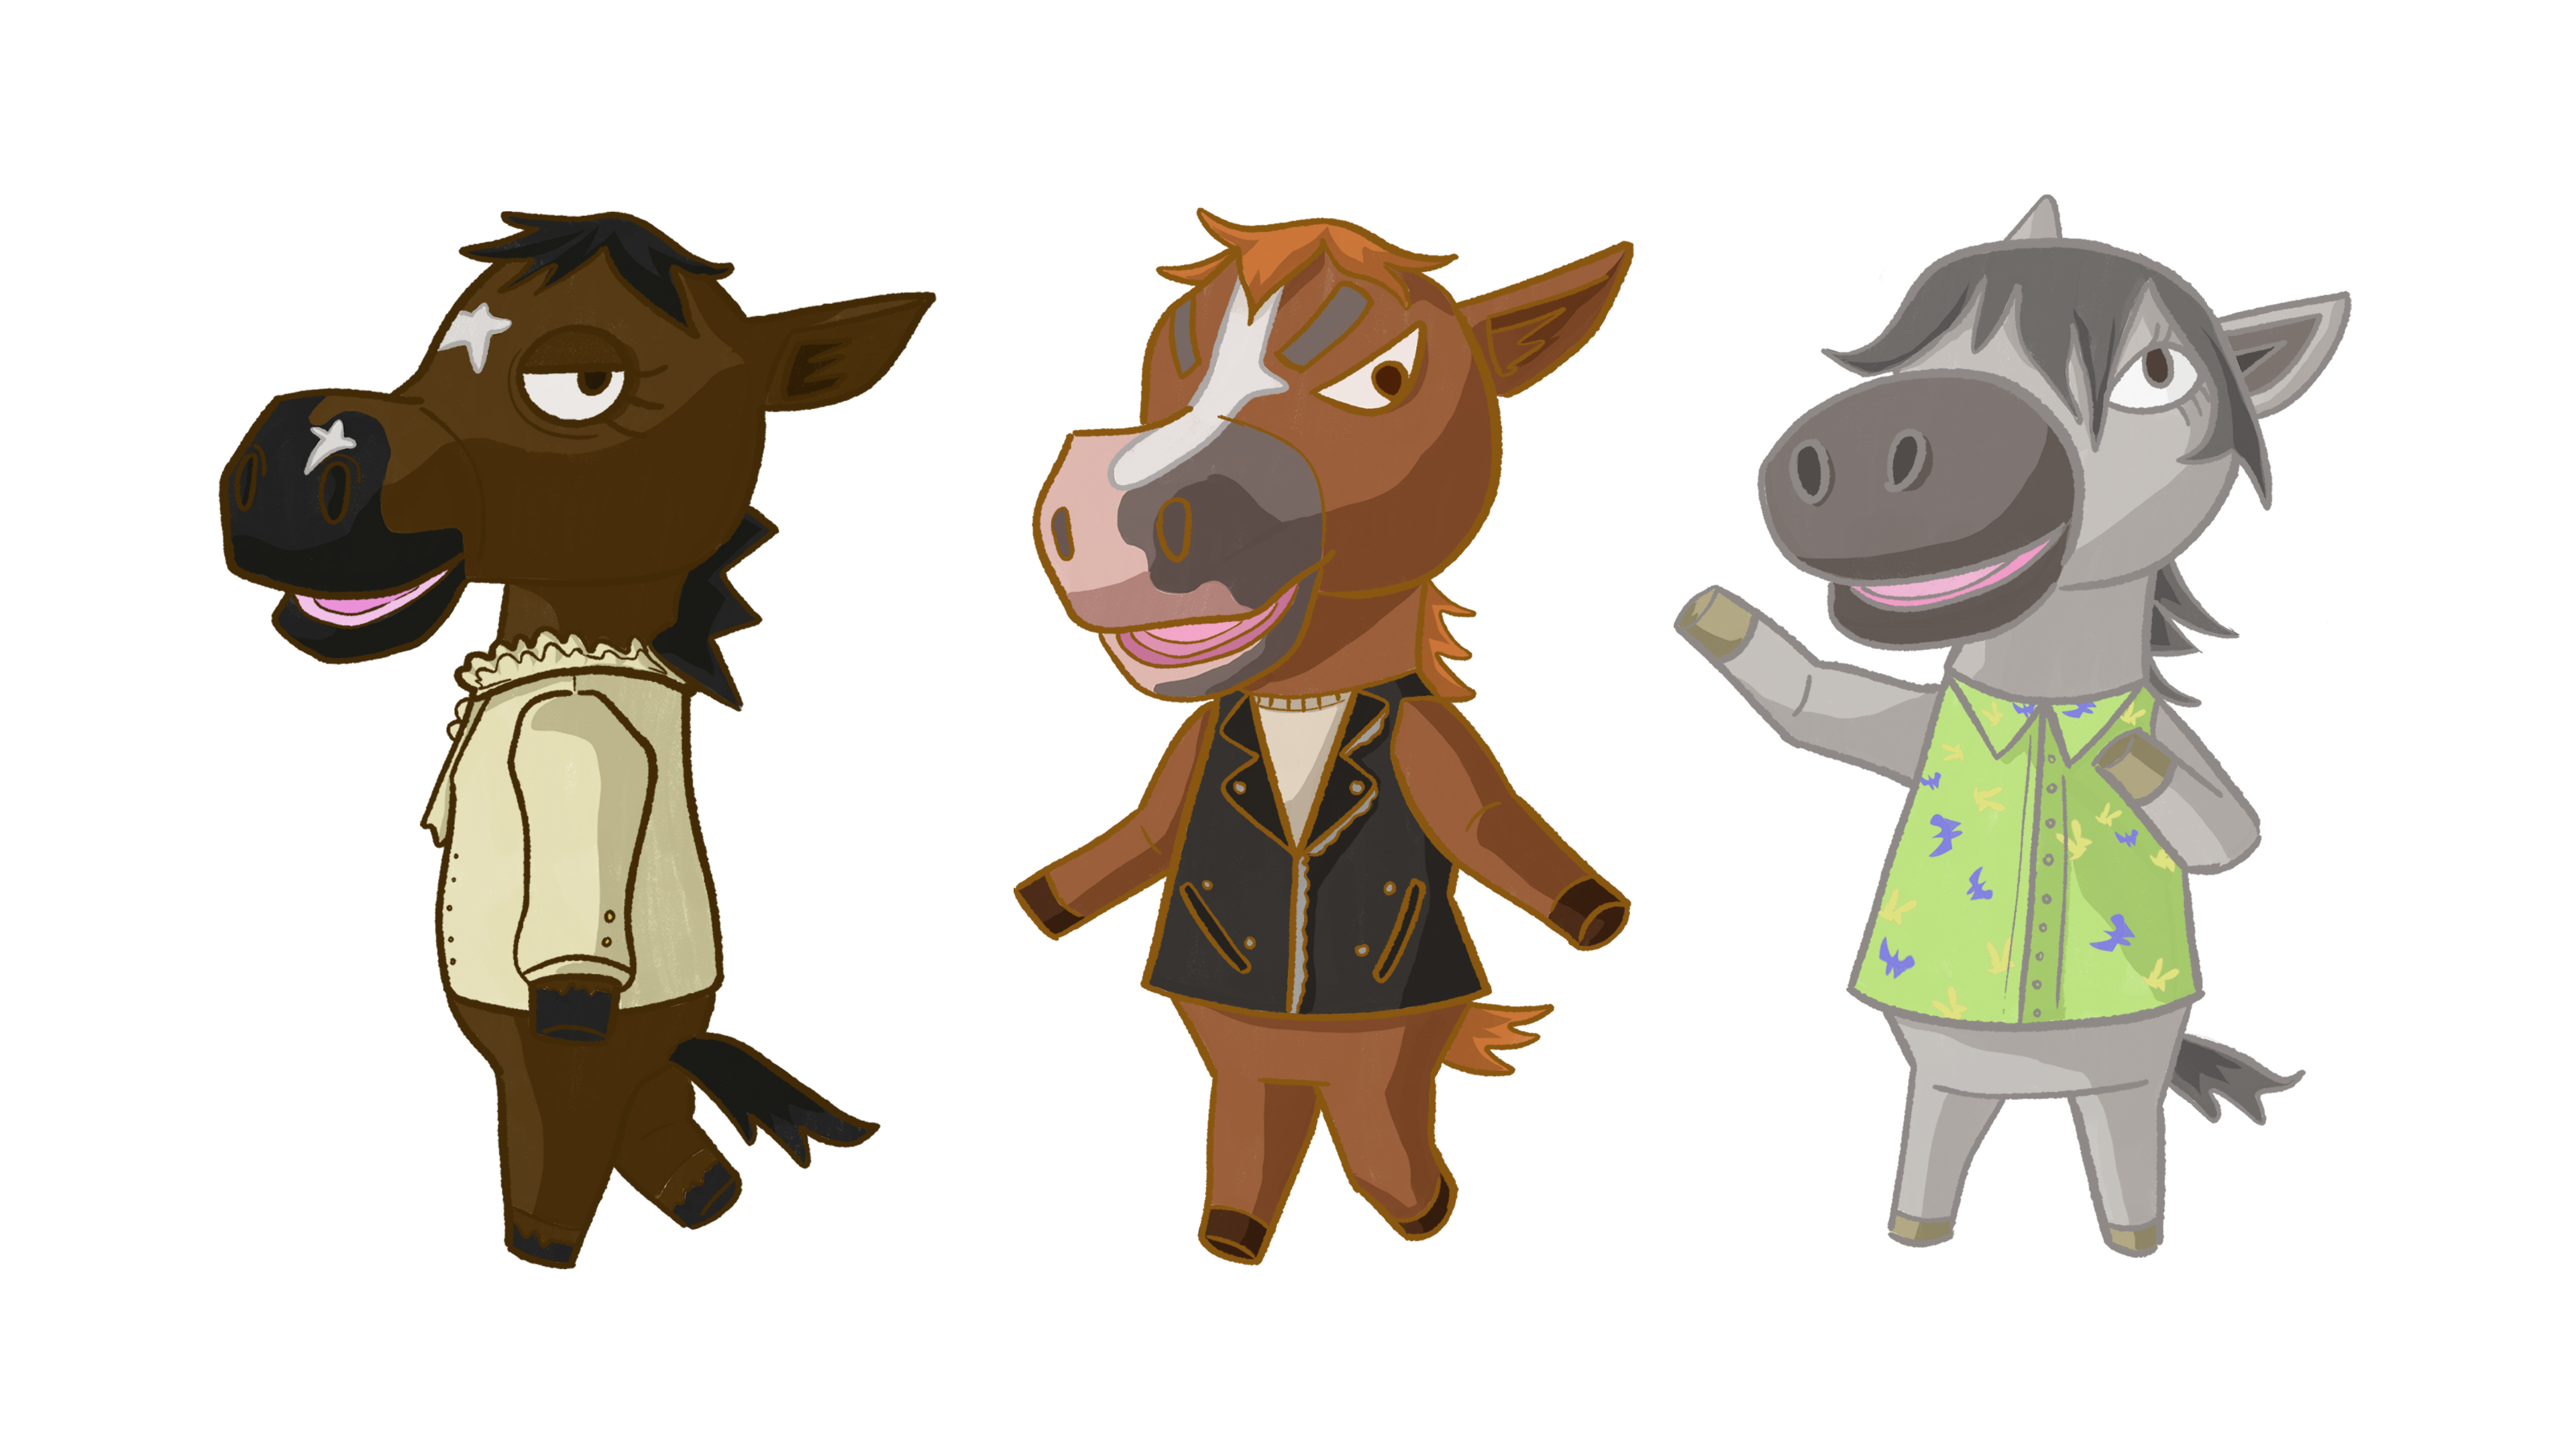 The horses as Animal Crossing characters